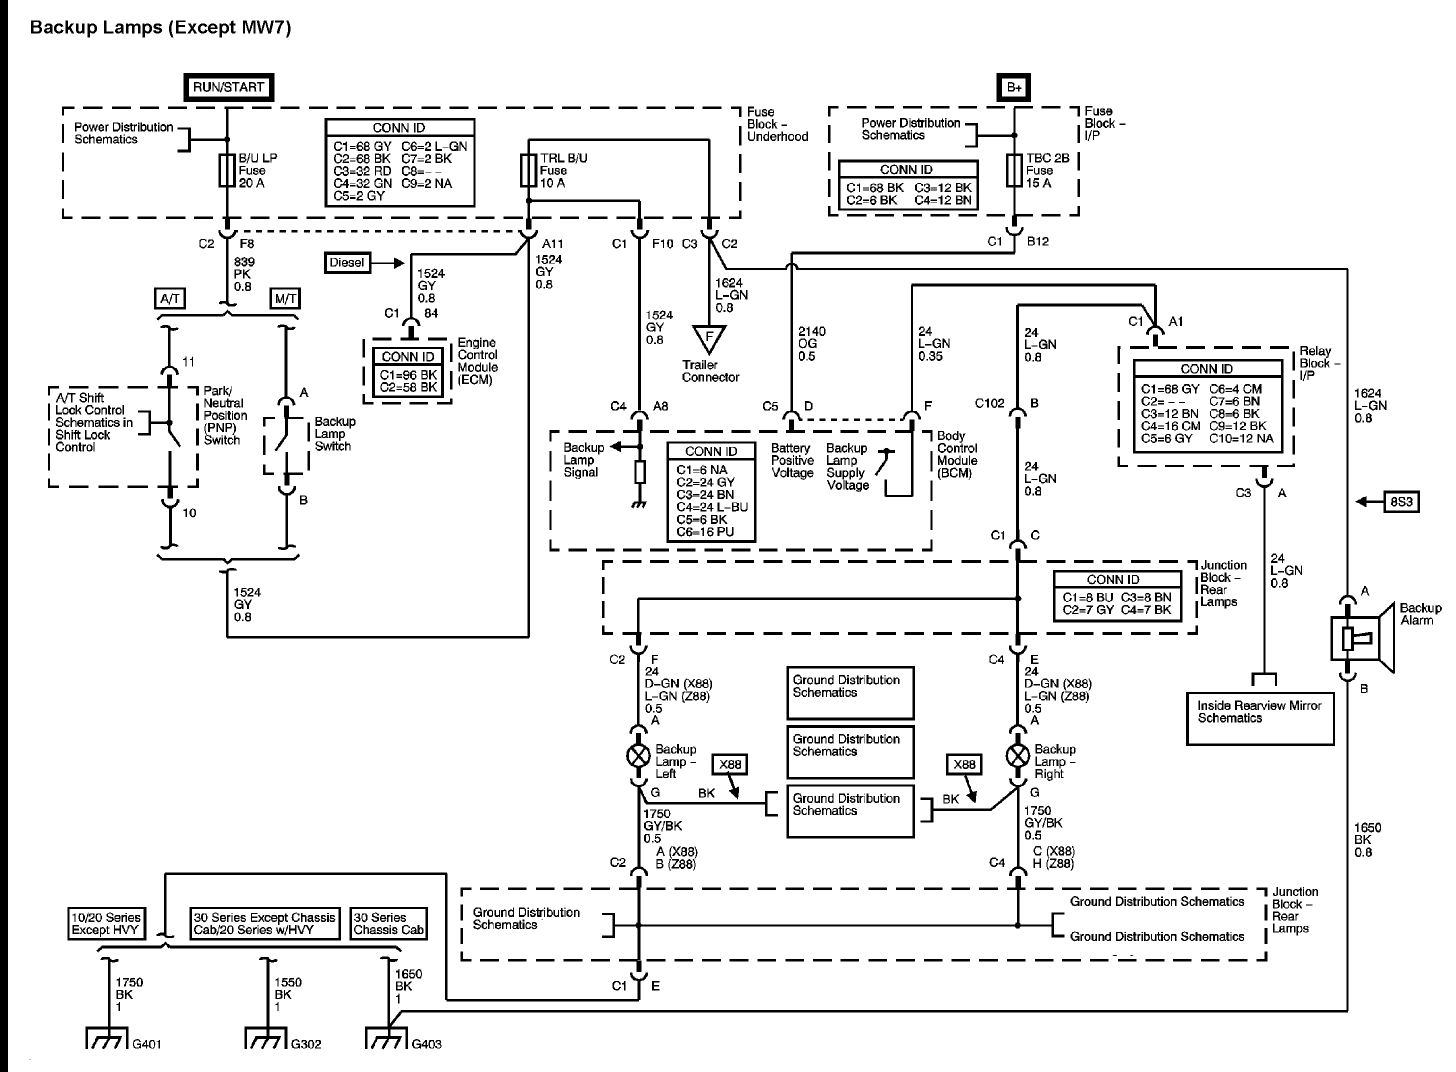 2006 gmc sierra wiring schematic | free wiring diagram 2009 gmc sierra 2500hd wiring diagram